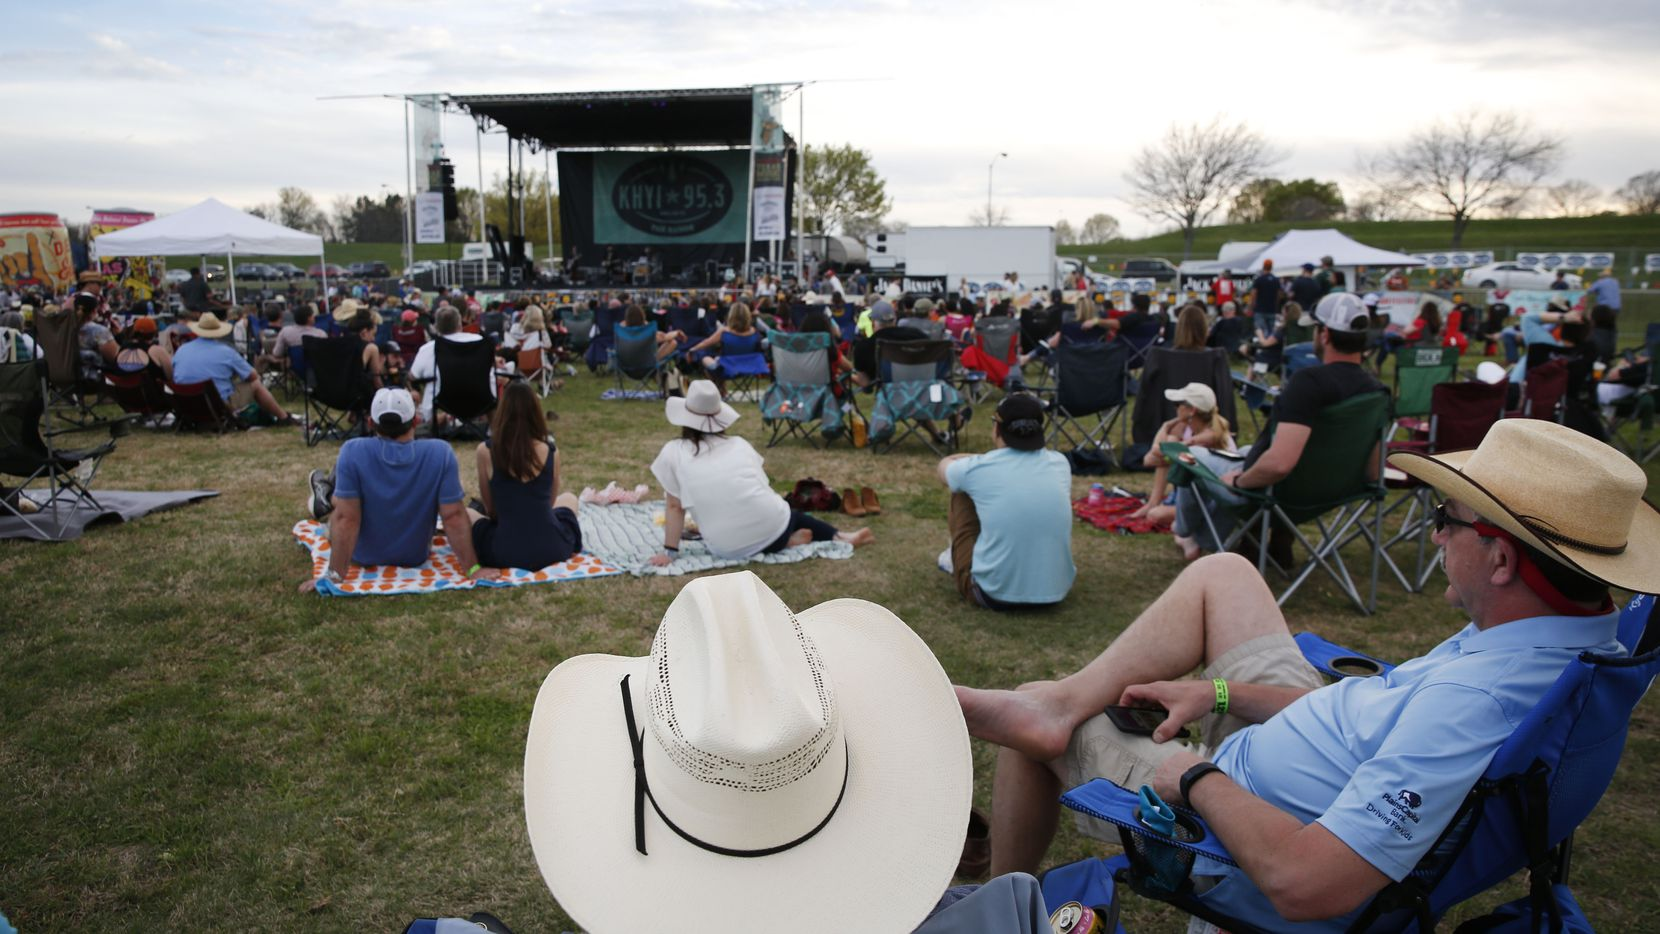 A 2018 file photo shows that year's Texas Music Revolution, held in Plano. The 2021 festival in McKinney over the weekend was one of the first major music fests to take place in North Texas since the pandemic.